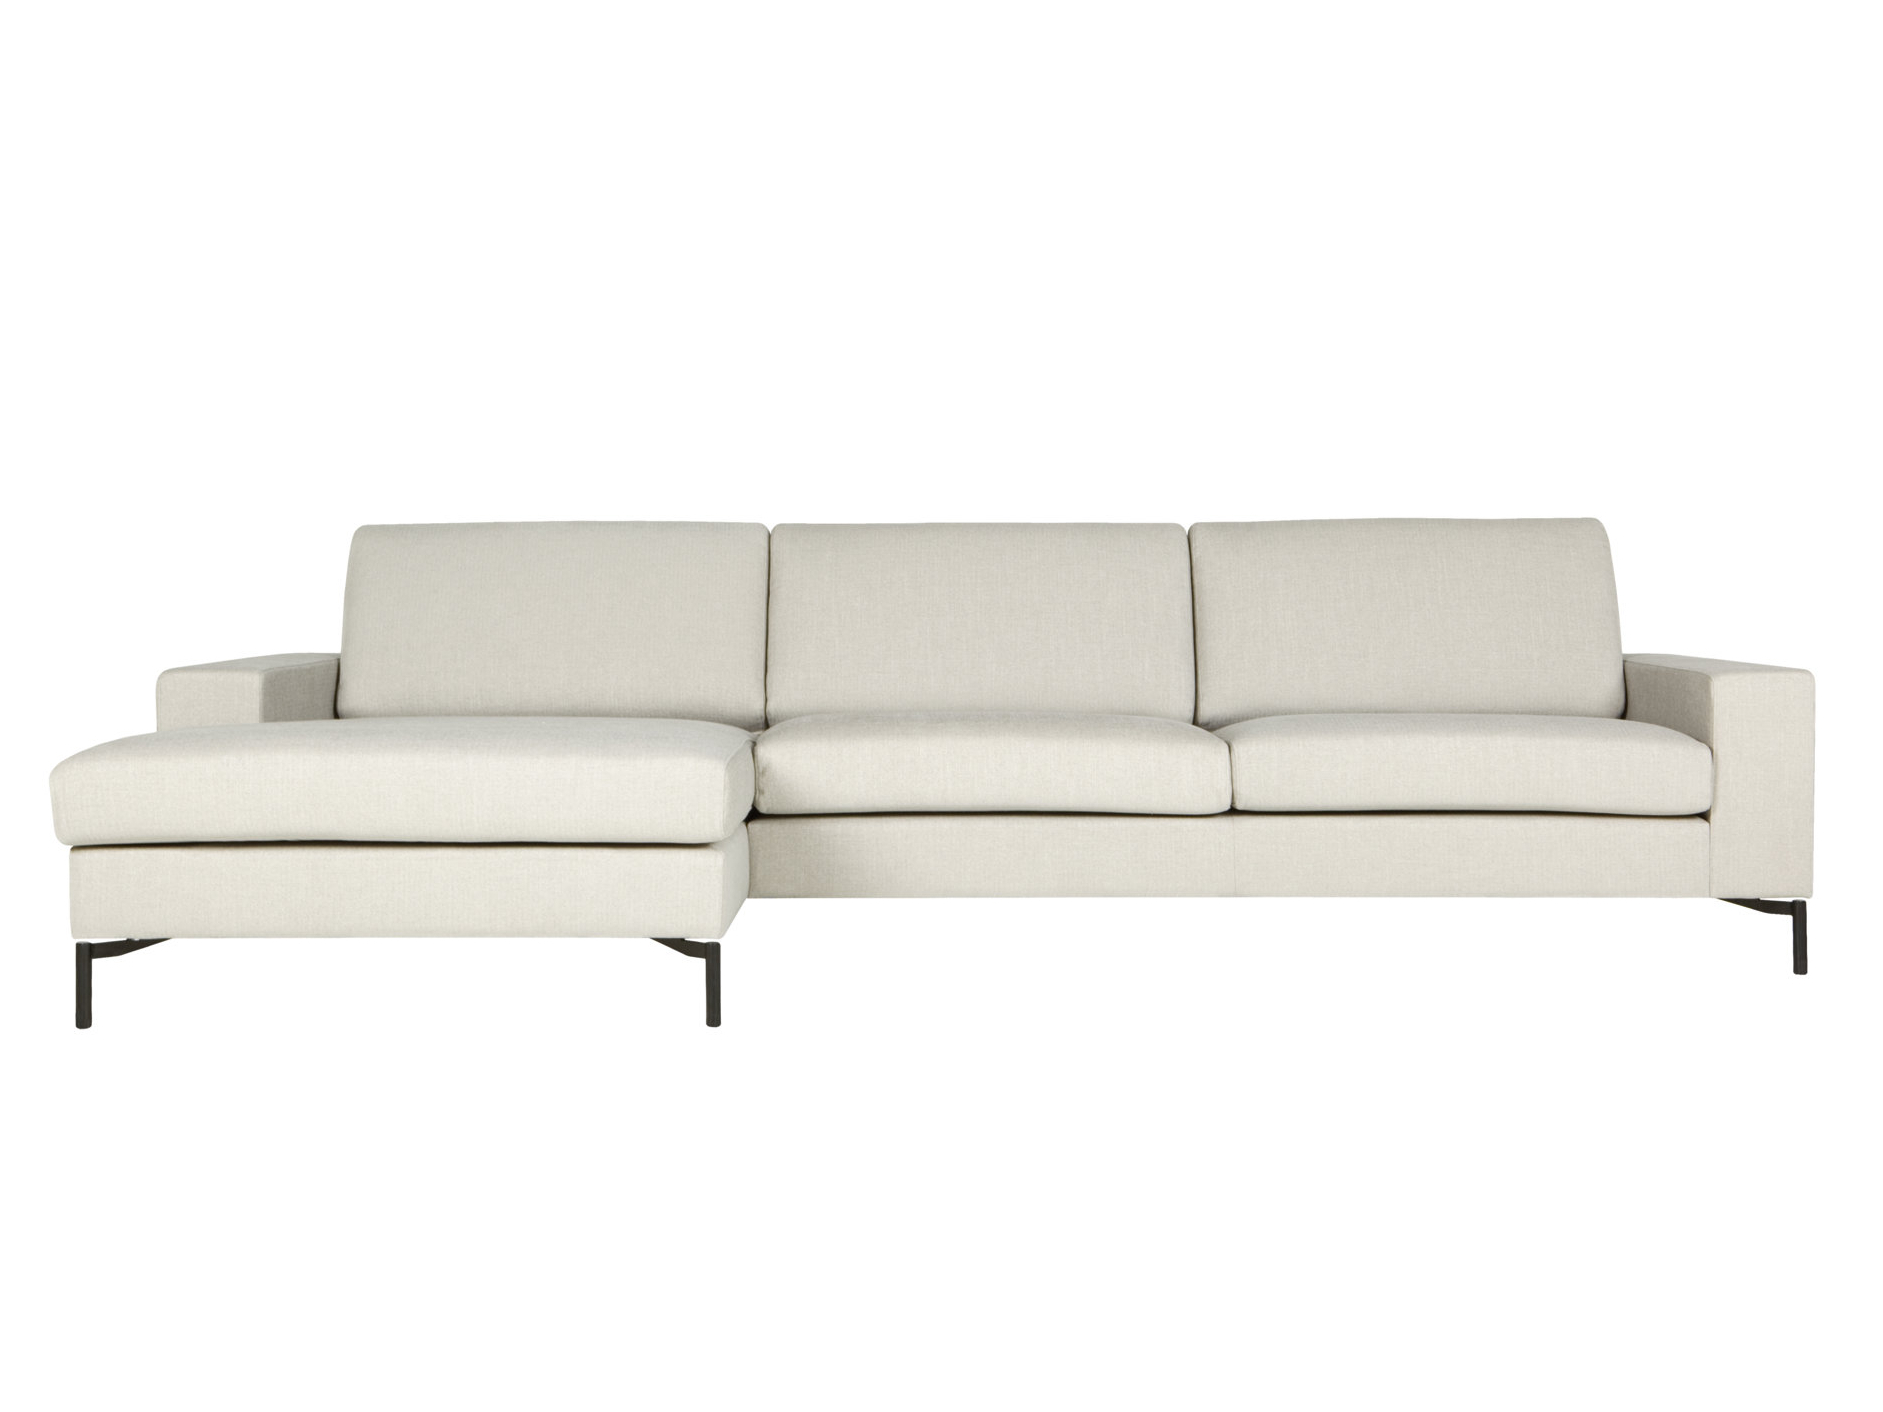 Quattro sofa with chaise longue quattro collection by sits for Chaise longue manufacturers